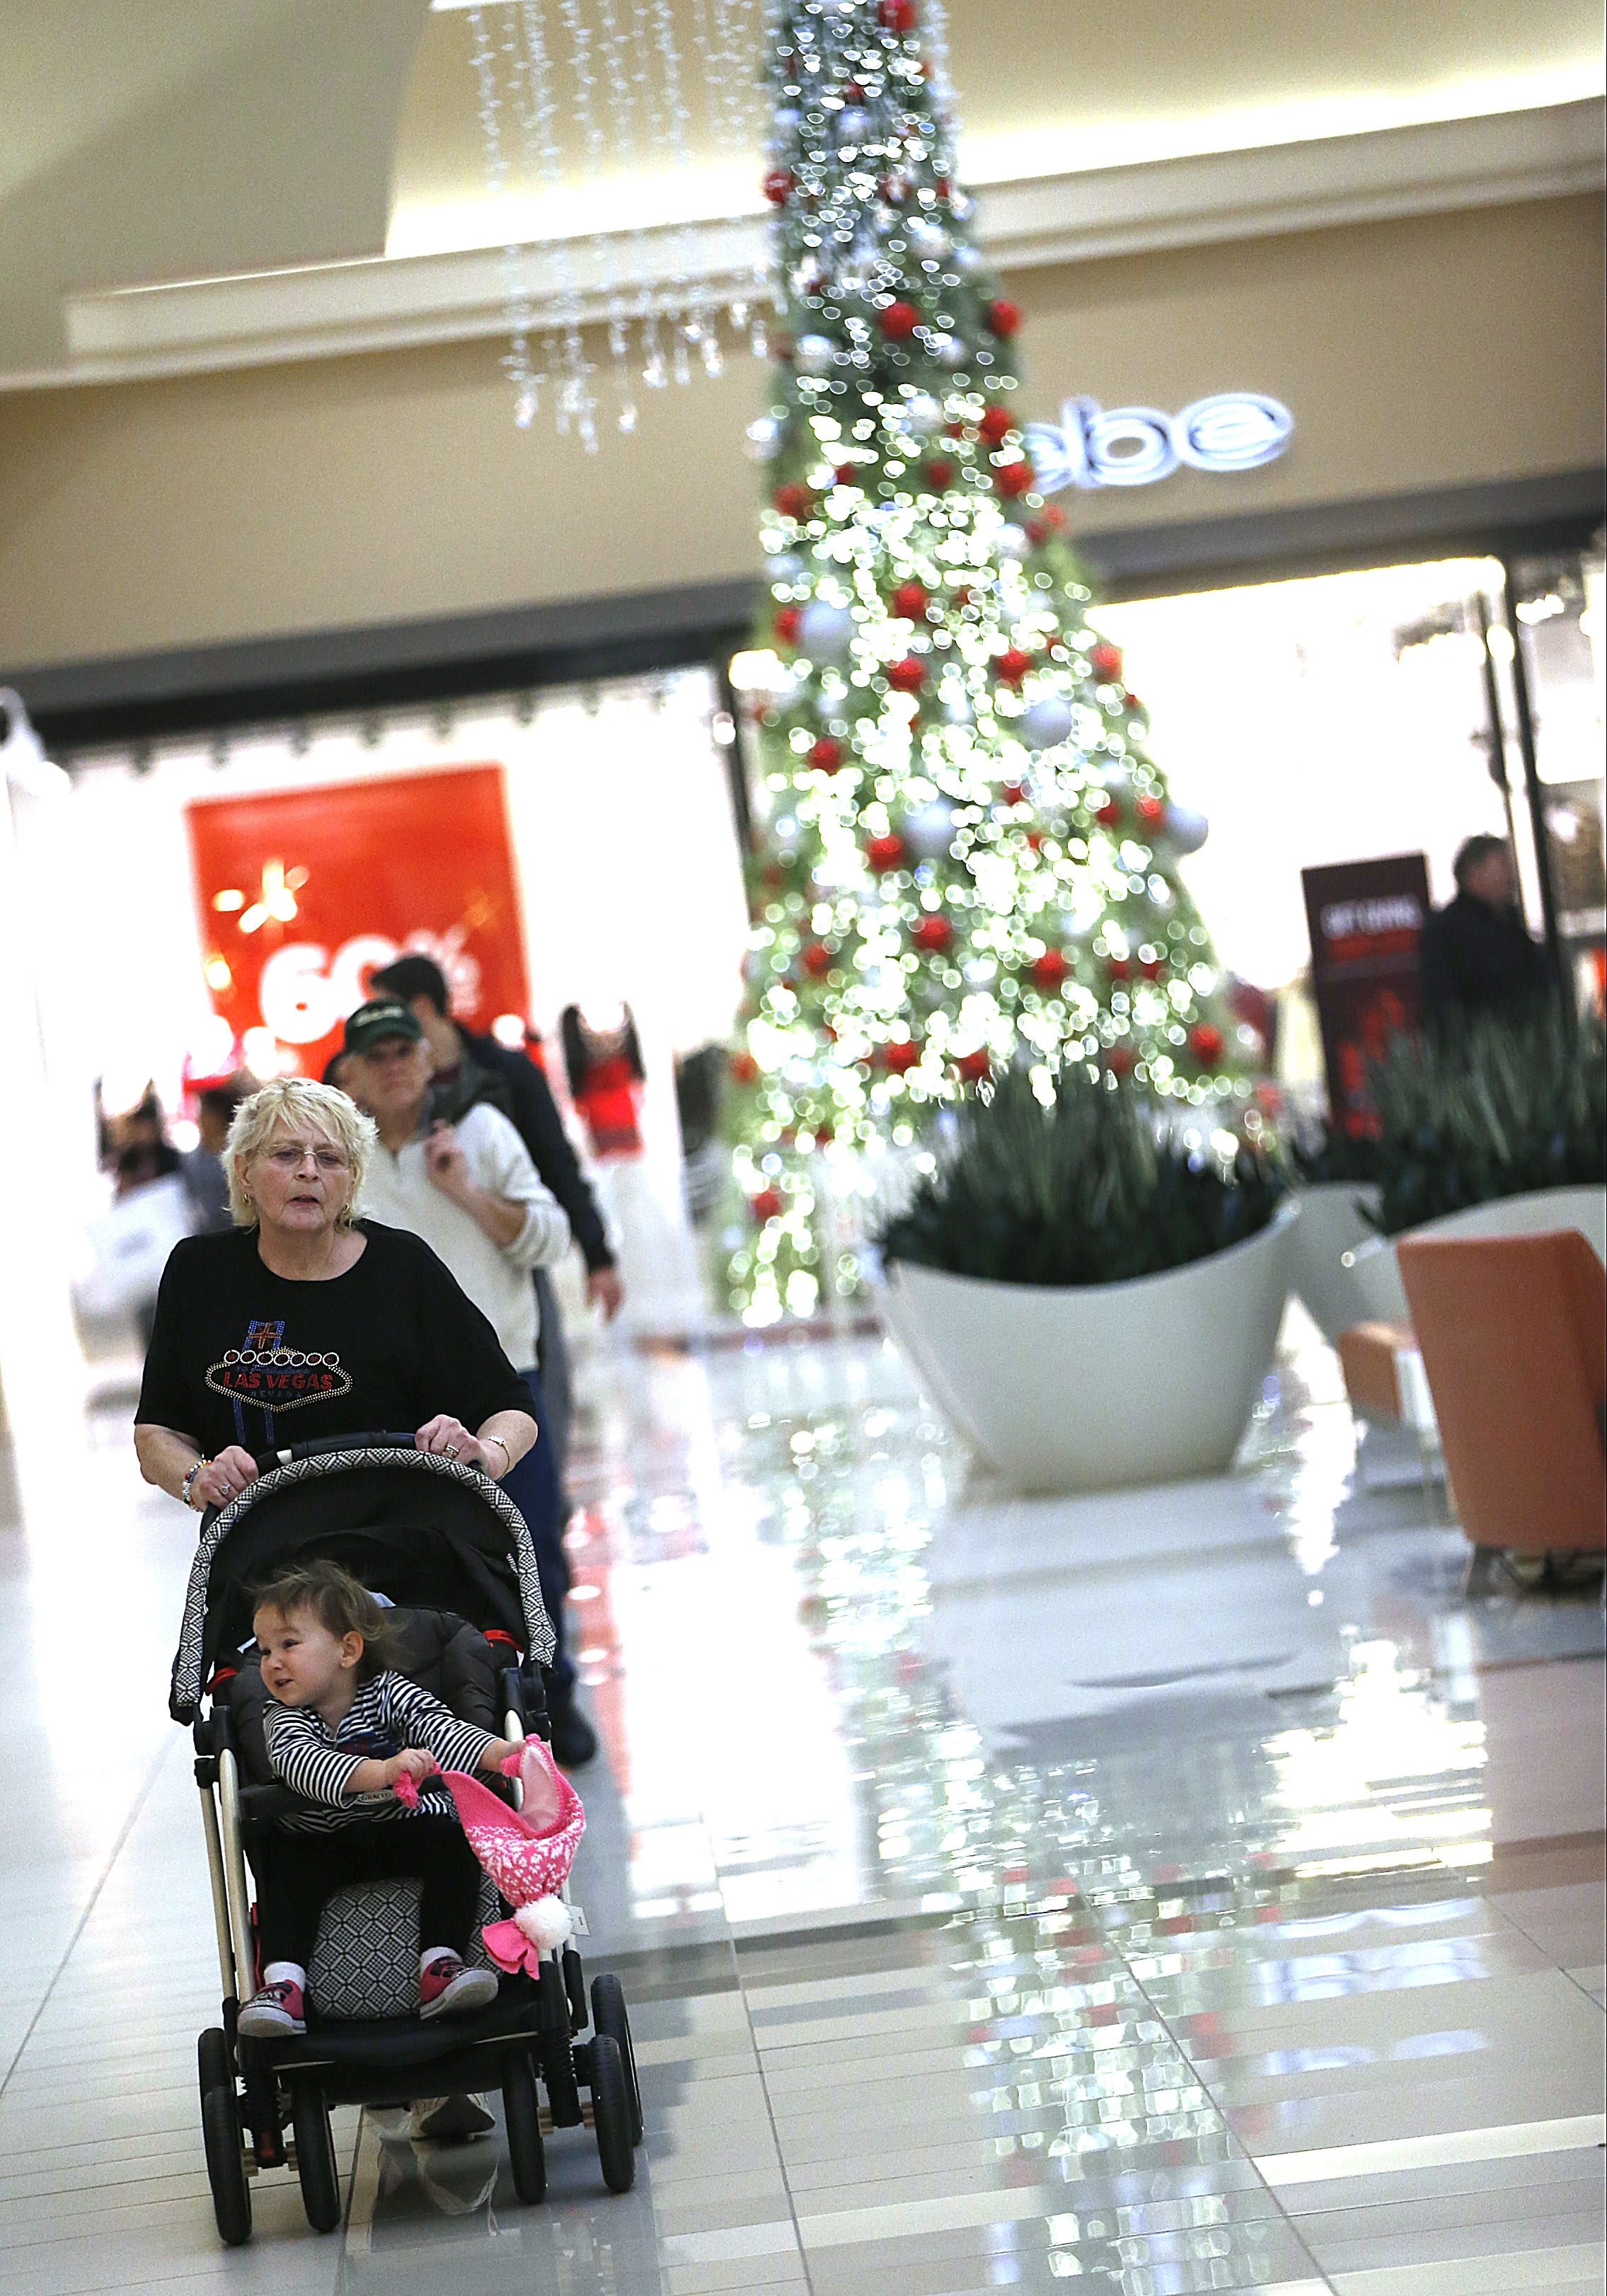 Fashion Outlets of Niagara Falls will kick off its Fashionably Late celebration at 8 p.m. today.